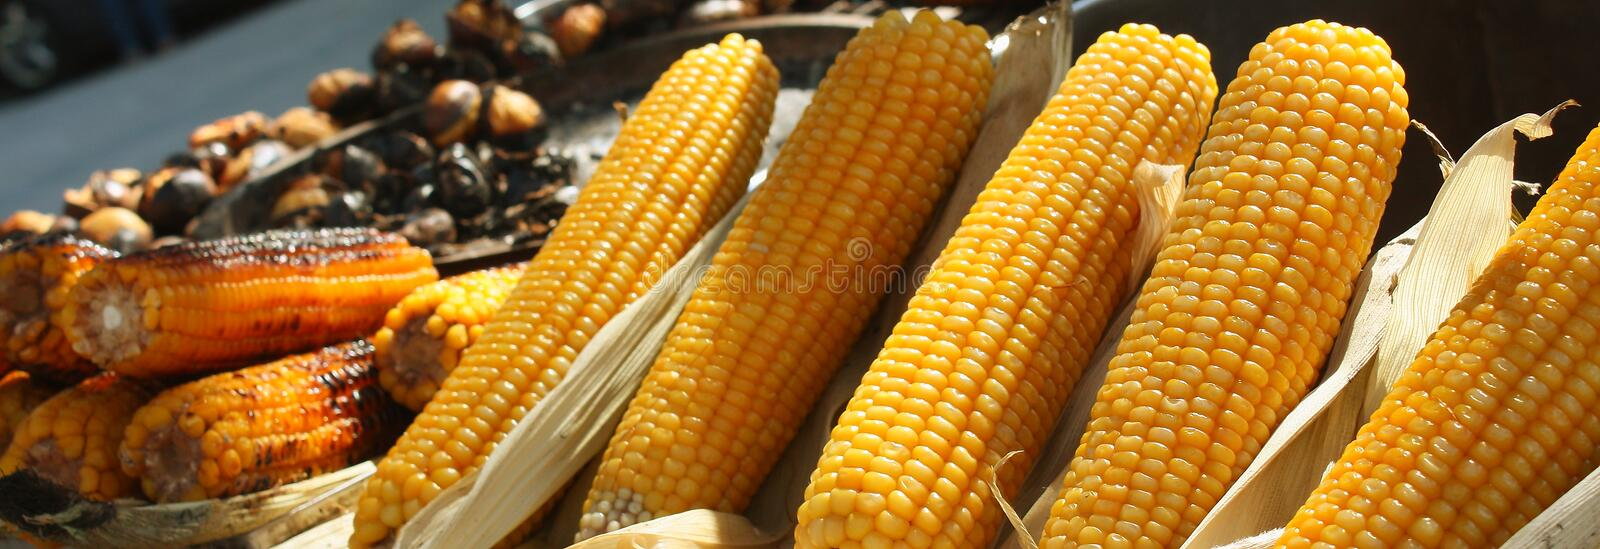 Corn on the cob at a street food stall.  royalty free stock photo